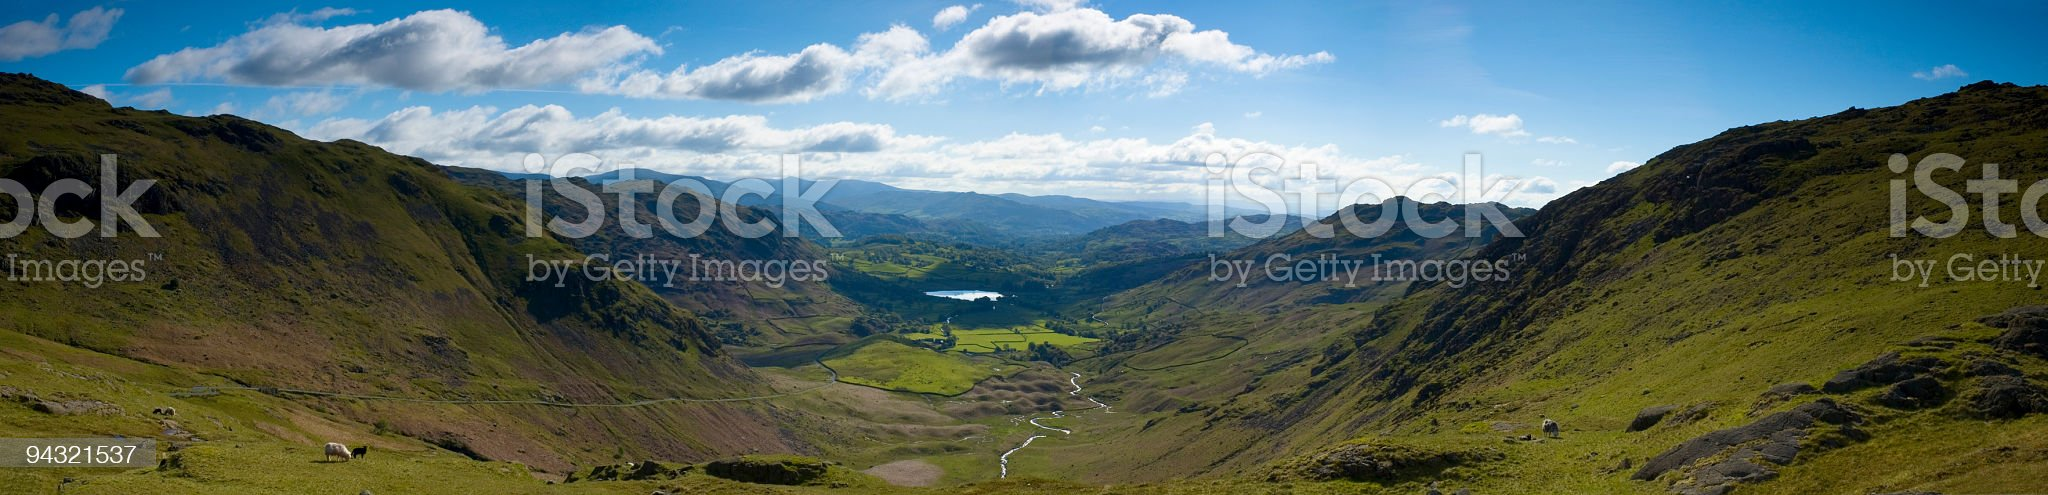 Dramatic valley view royalty-free stock photo